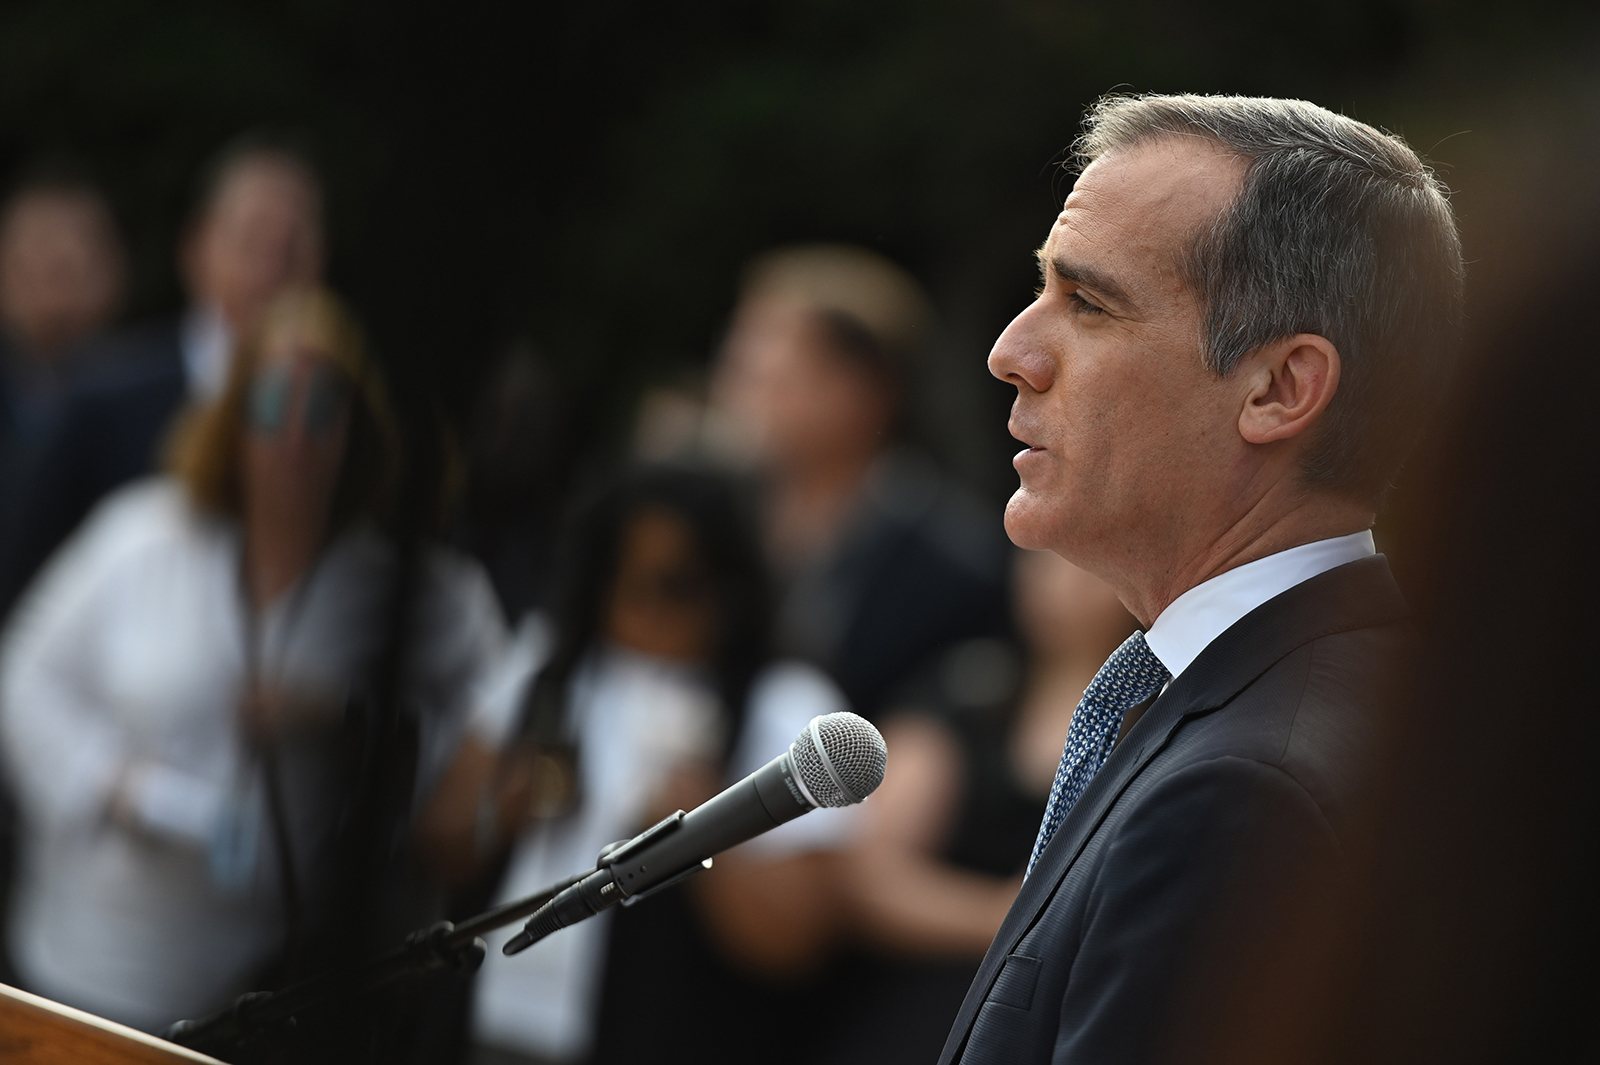 Los Angeles Mayor Eric Garcetti speaks during a press conference on the novel coronavirus, on March 4, in Los Angeles.